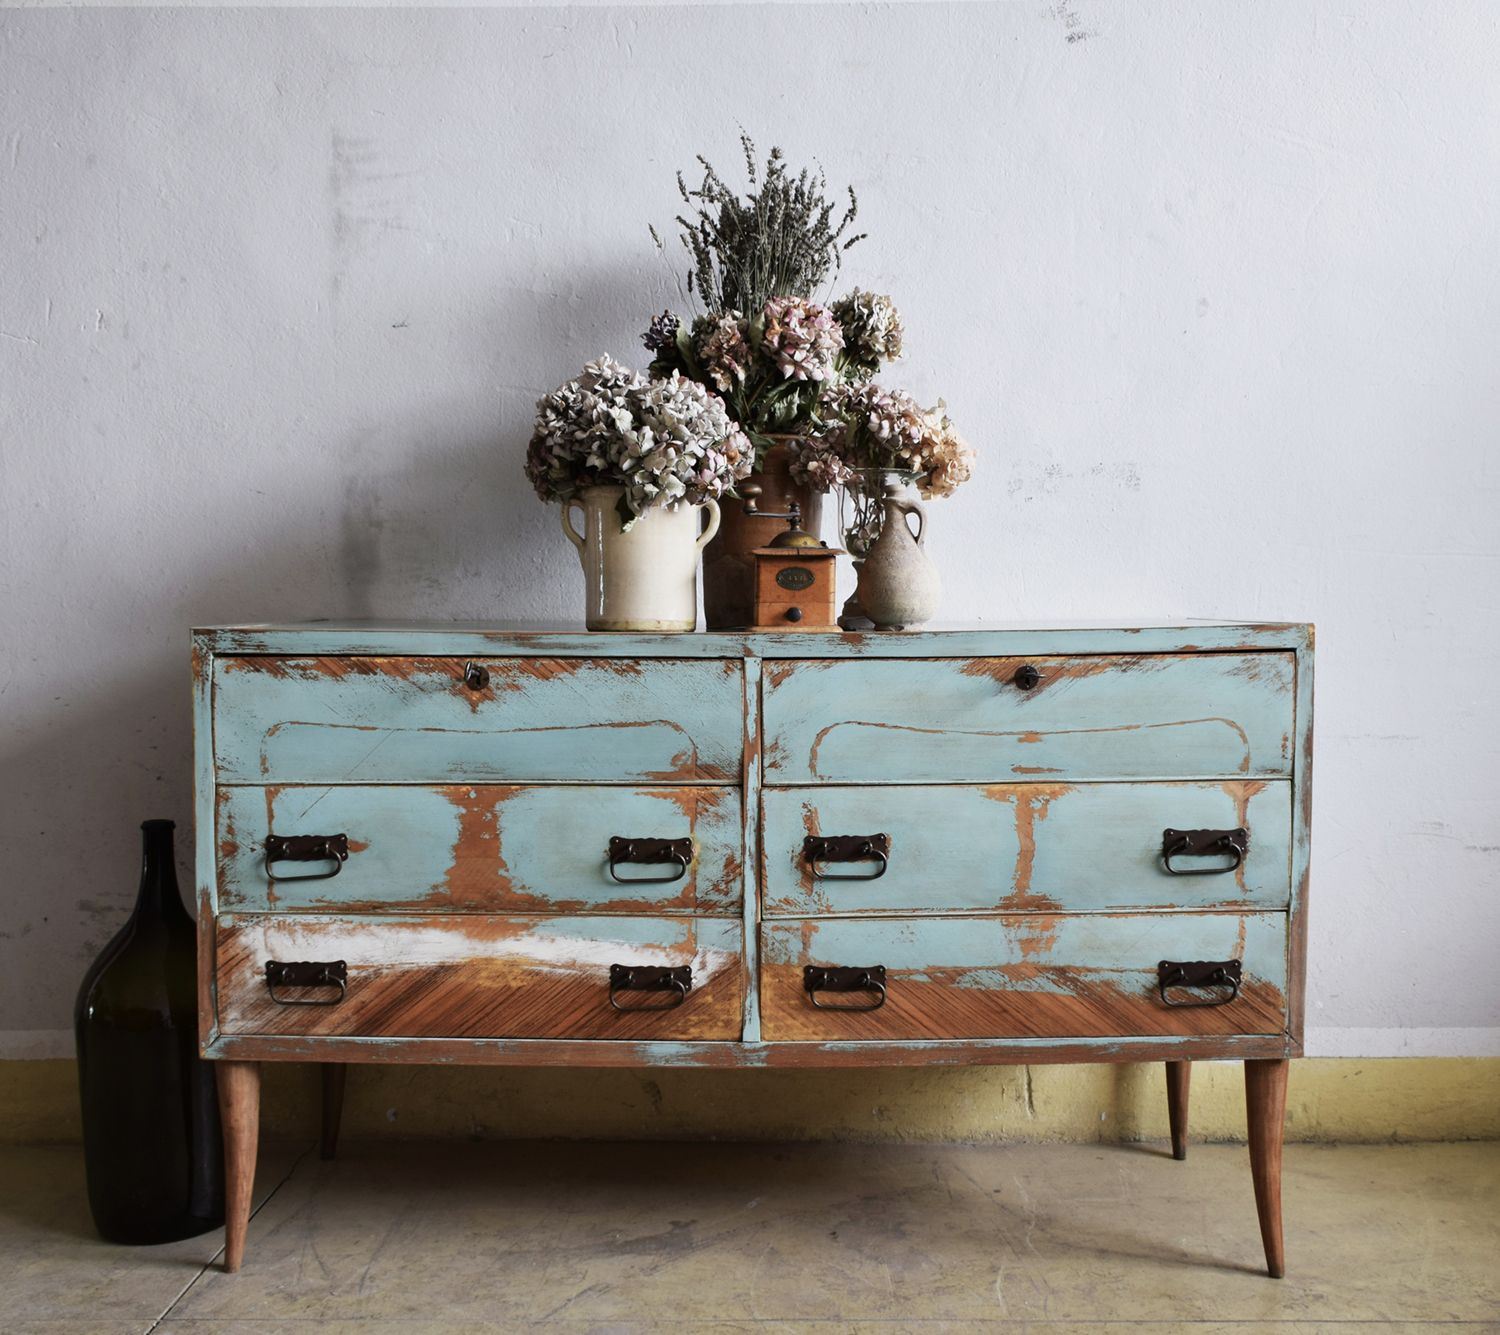 FEDERICA SCALETTA -vintage sideboard , handmade decoration in Italy. #furniture #vintagefurniture #furnituredecoration #furnituredecor #interiors #homedecoration